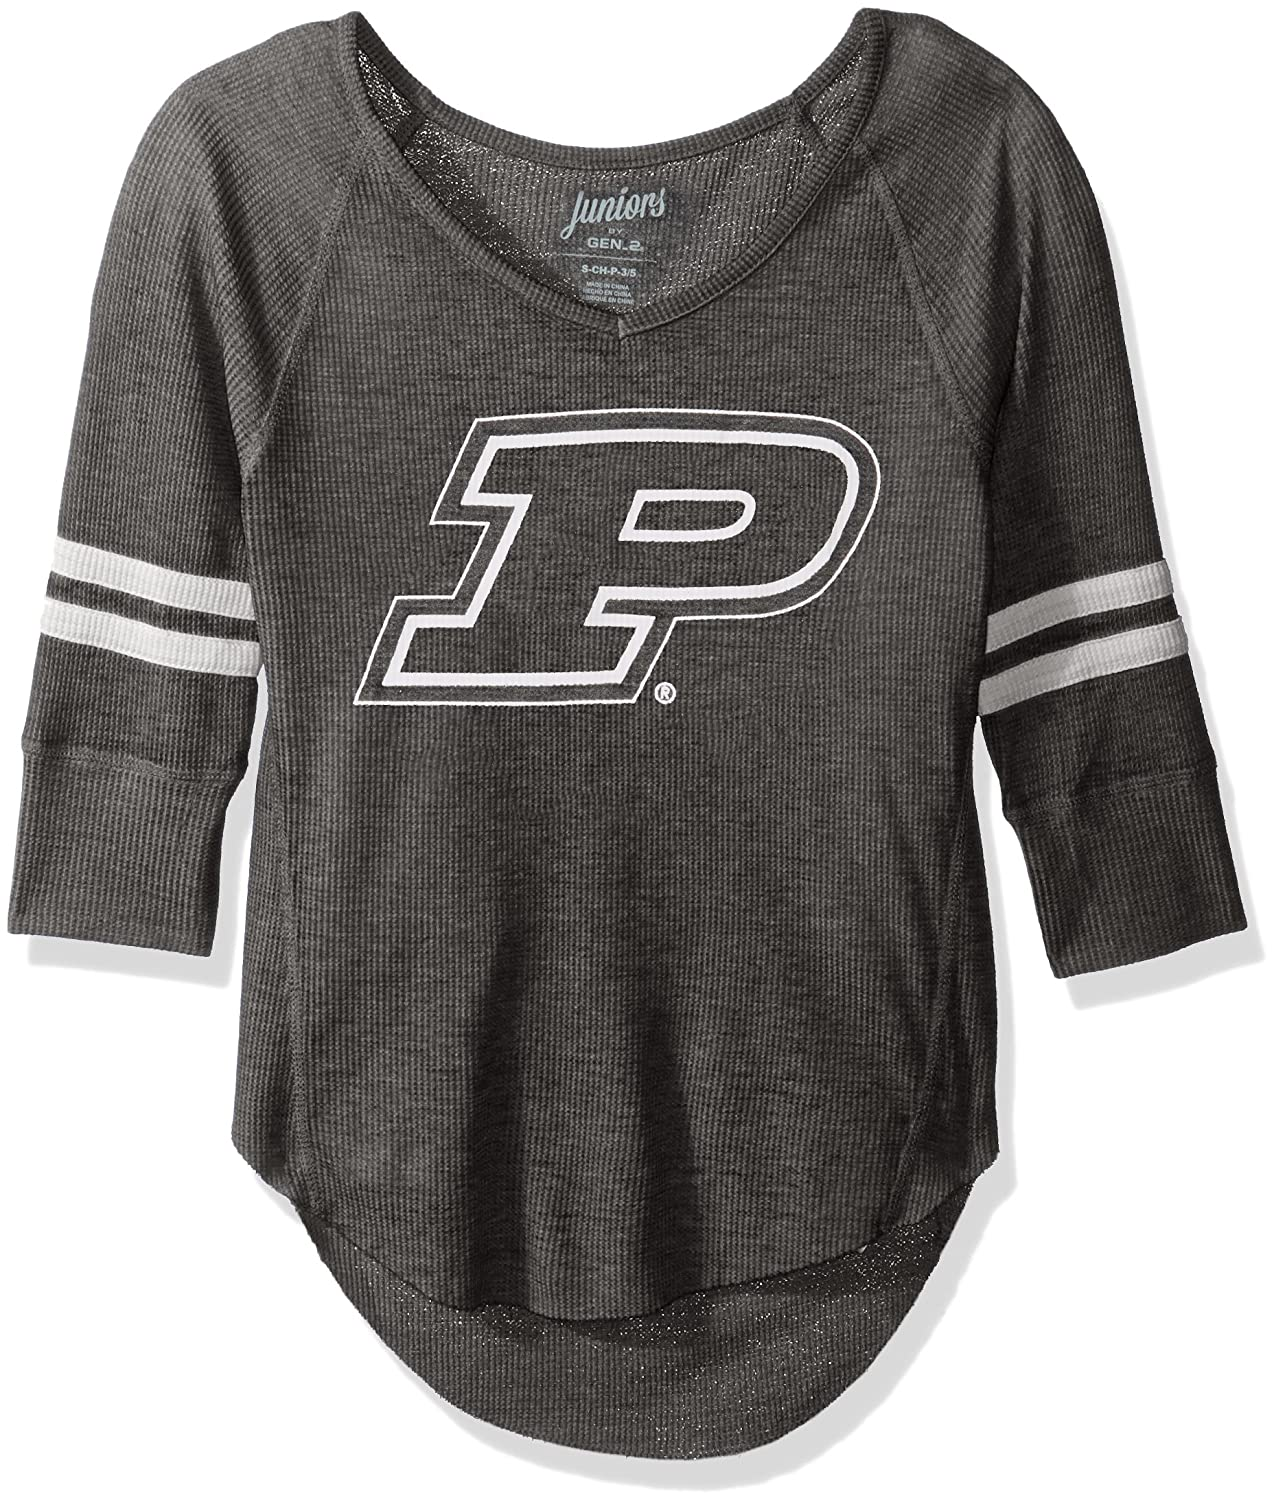 Team Color NCAA Purdue Boilermakers Juniors Outerstuff Relaxed 3//4 Raglan Thermal Top 3-5 Small